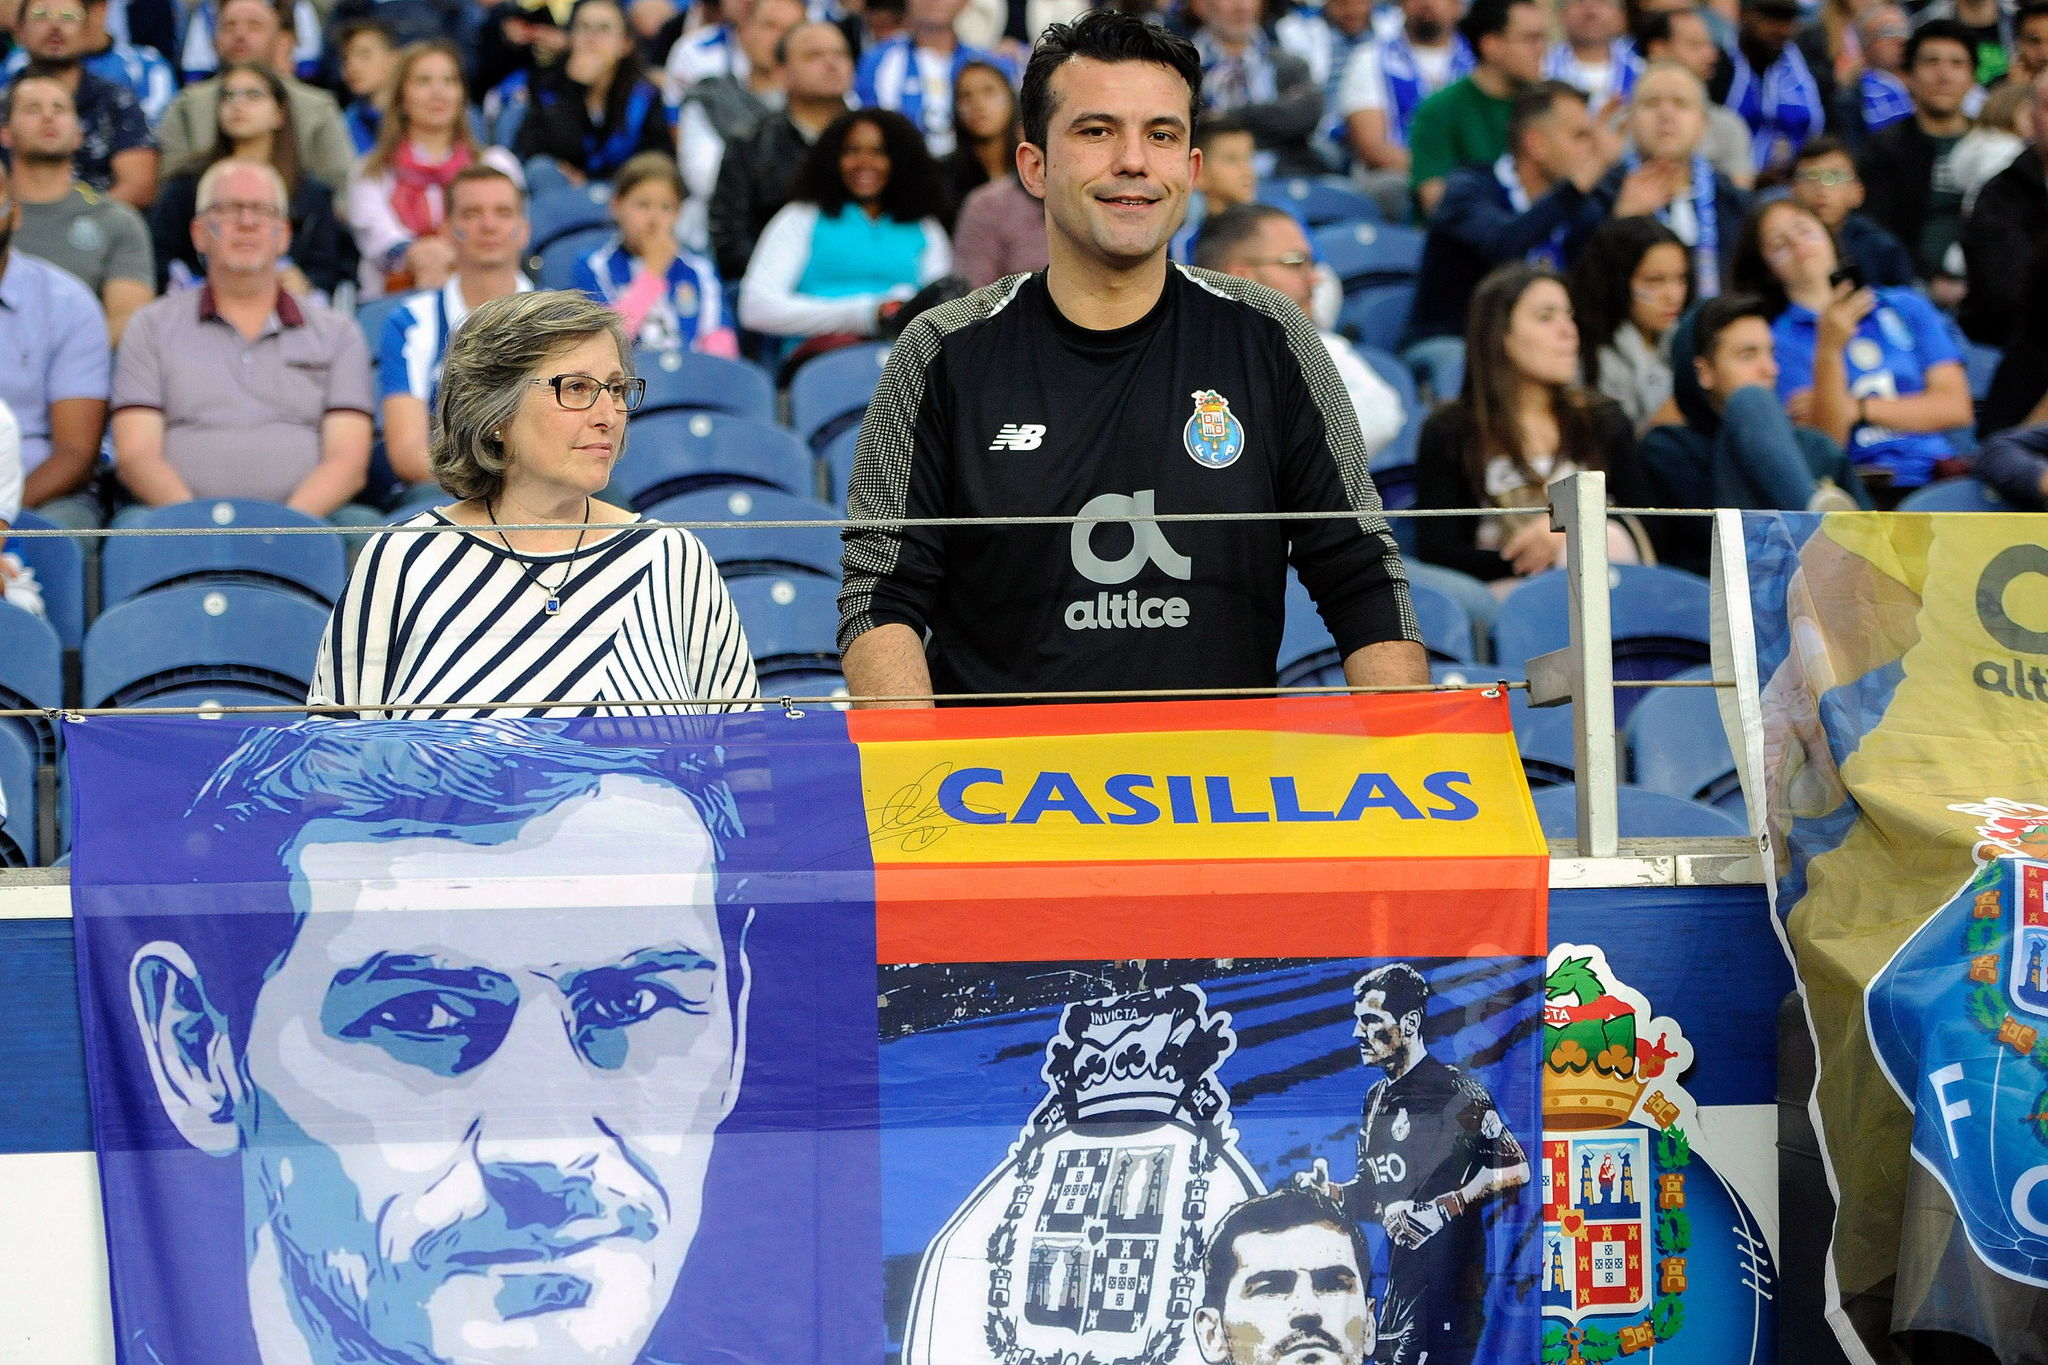 FV. <HIT>Porto</HIT> (Portugal), 04/05/2019.- FC <HIT>Porto</HIT>s supporters with poster in honor of the Spanish goalkeeper Iker Casillas prior the Portuguese First League soccer match between FC <HIT>Porto</HIT> and Desportivo das Aves held at Dragao stadium in <HIT>Porto</HIT>, Portugal, 04 May 2019. EFE/EPA/FERNANDO VELUDO